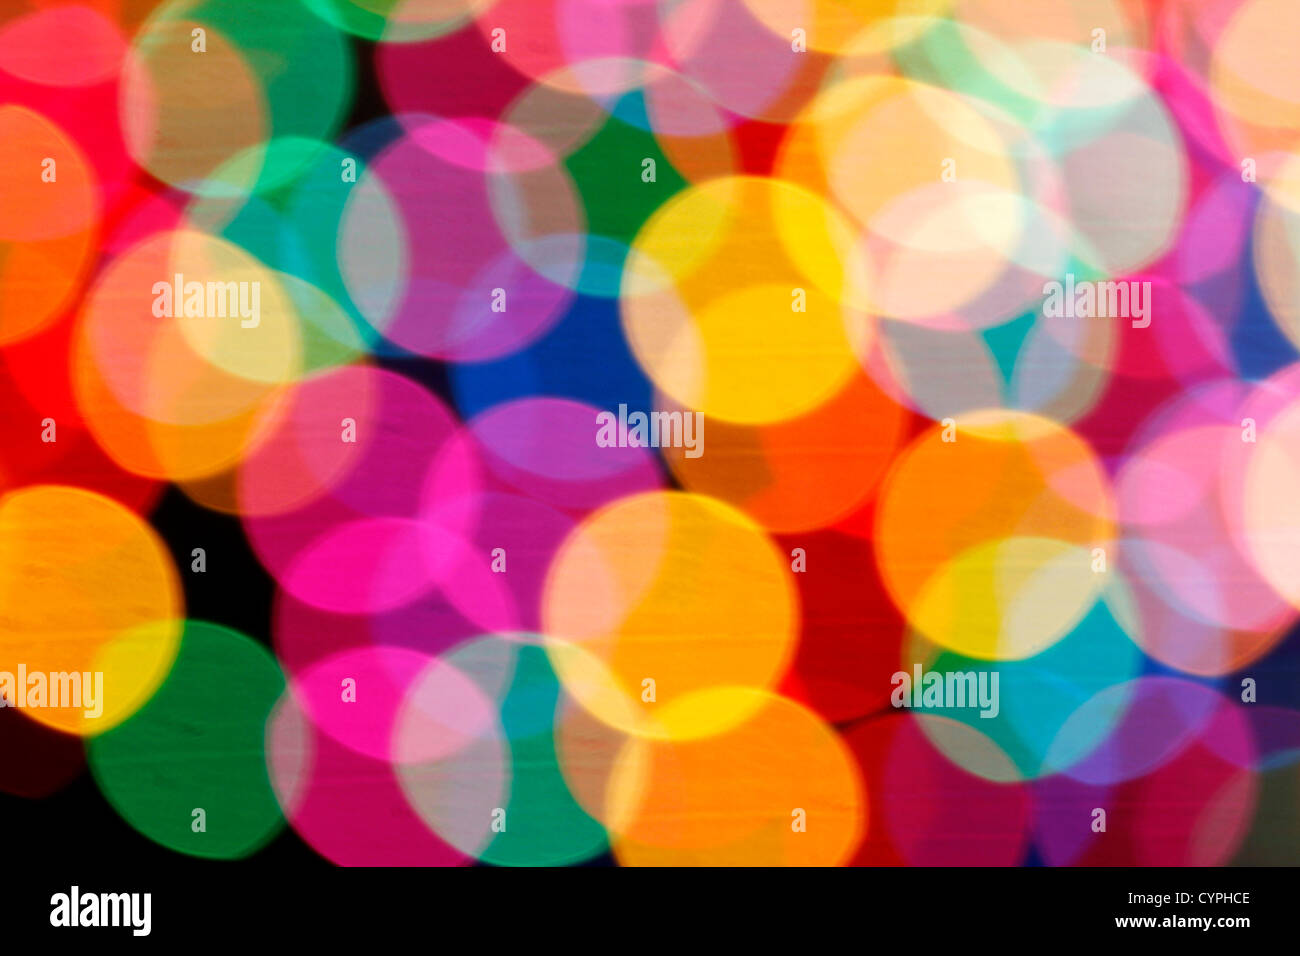 Abstract out-of-focus lights - Stock Image